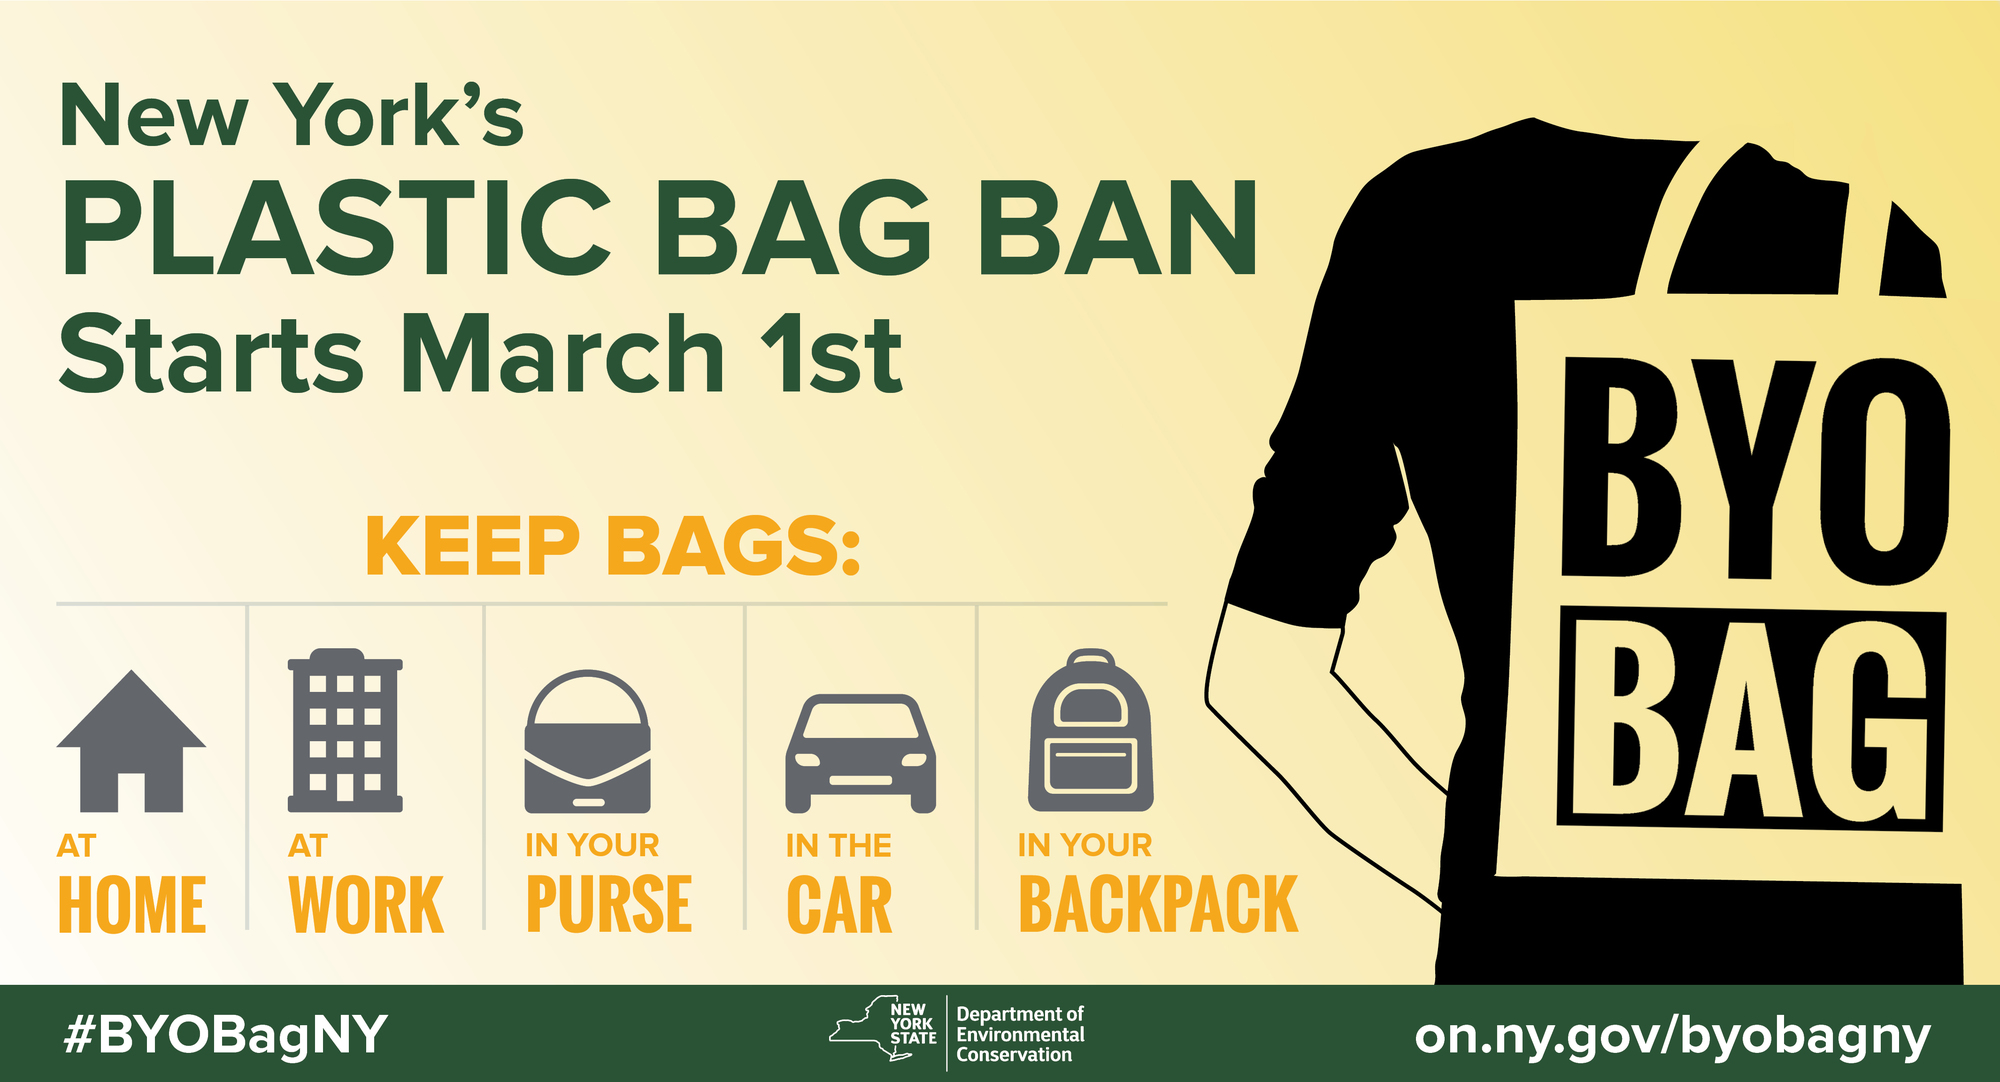 Bring Your Reusable Bag with you everywhere